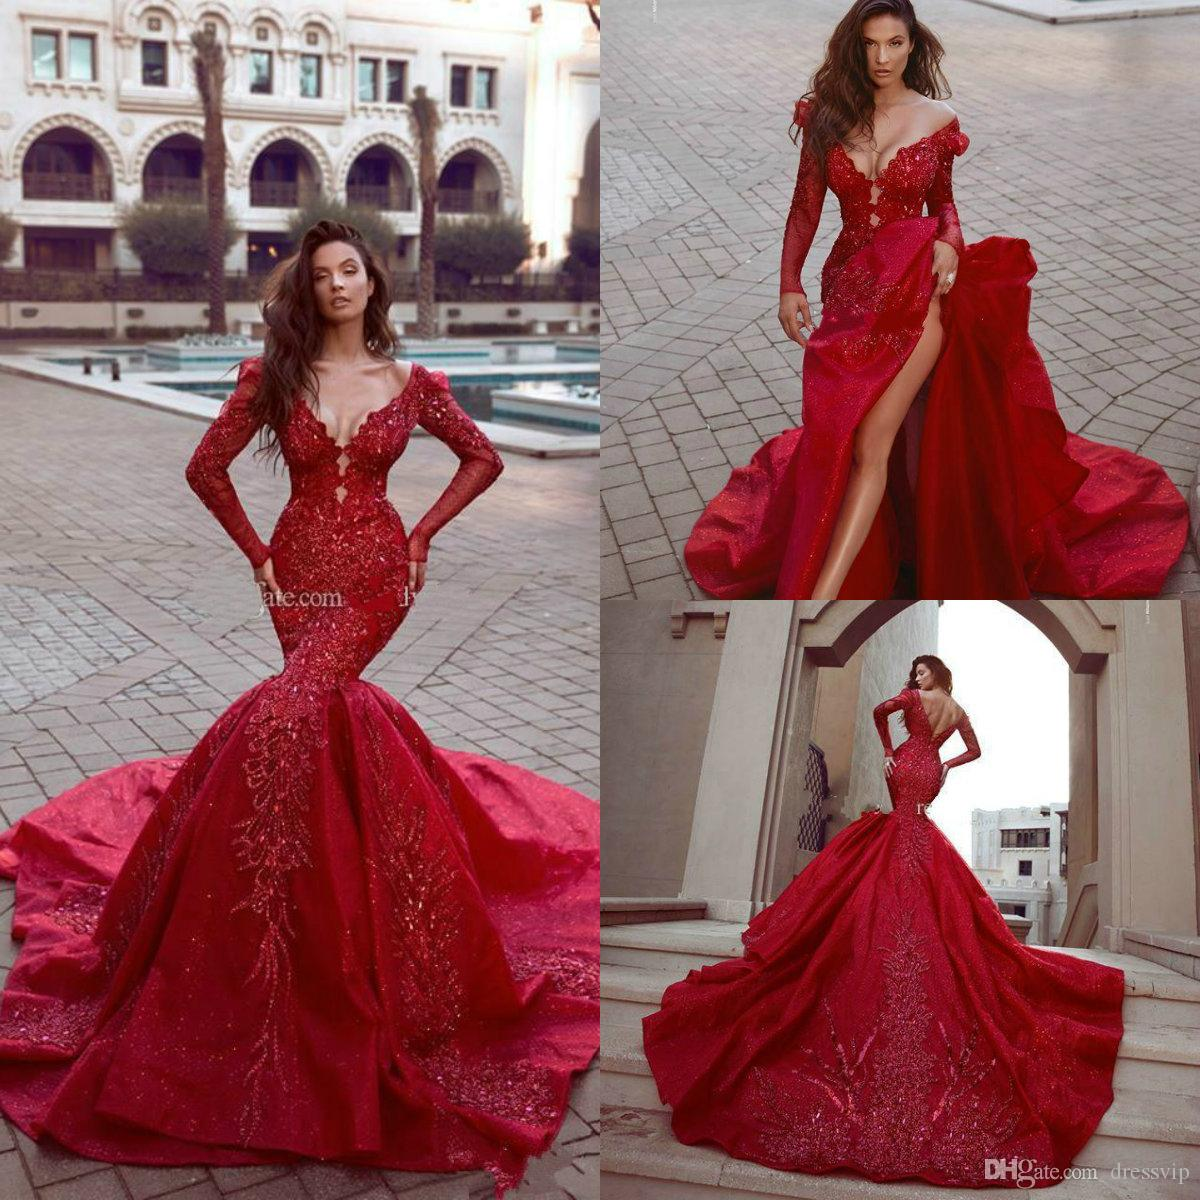 Rami Kadi 2018 Red Evening Dresses Off The Shoulder Long Sleeves Beads Sequins Appliques Sweep Train Prom Dress Custom Made Mermaid Gowns